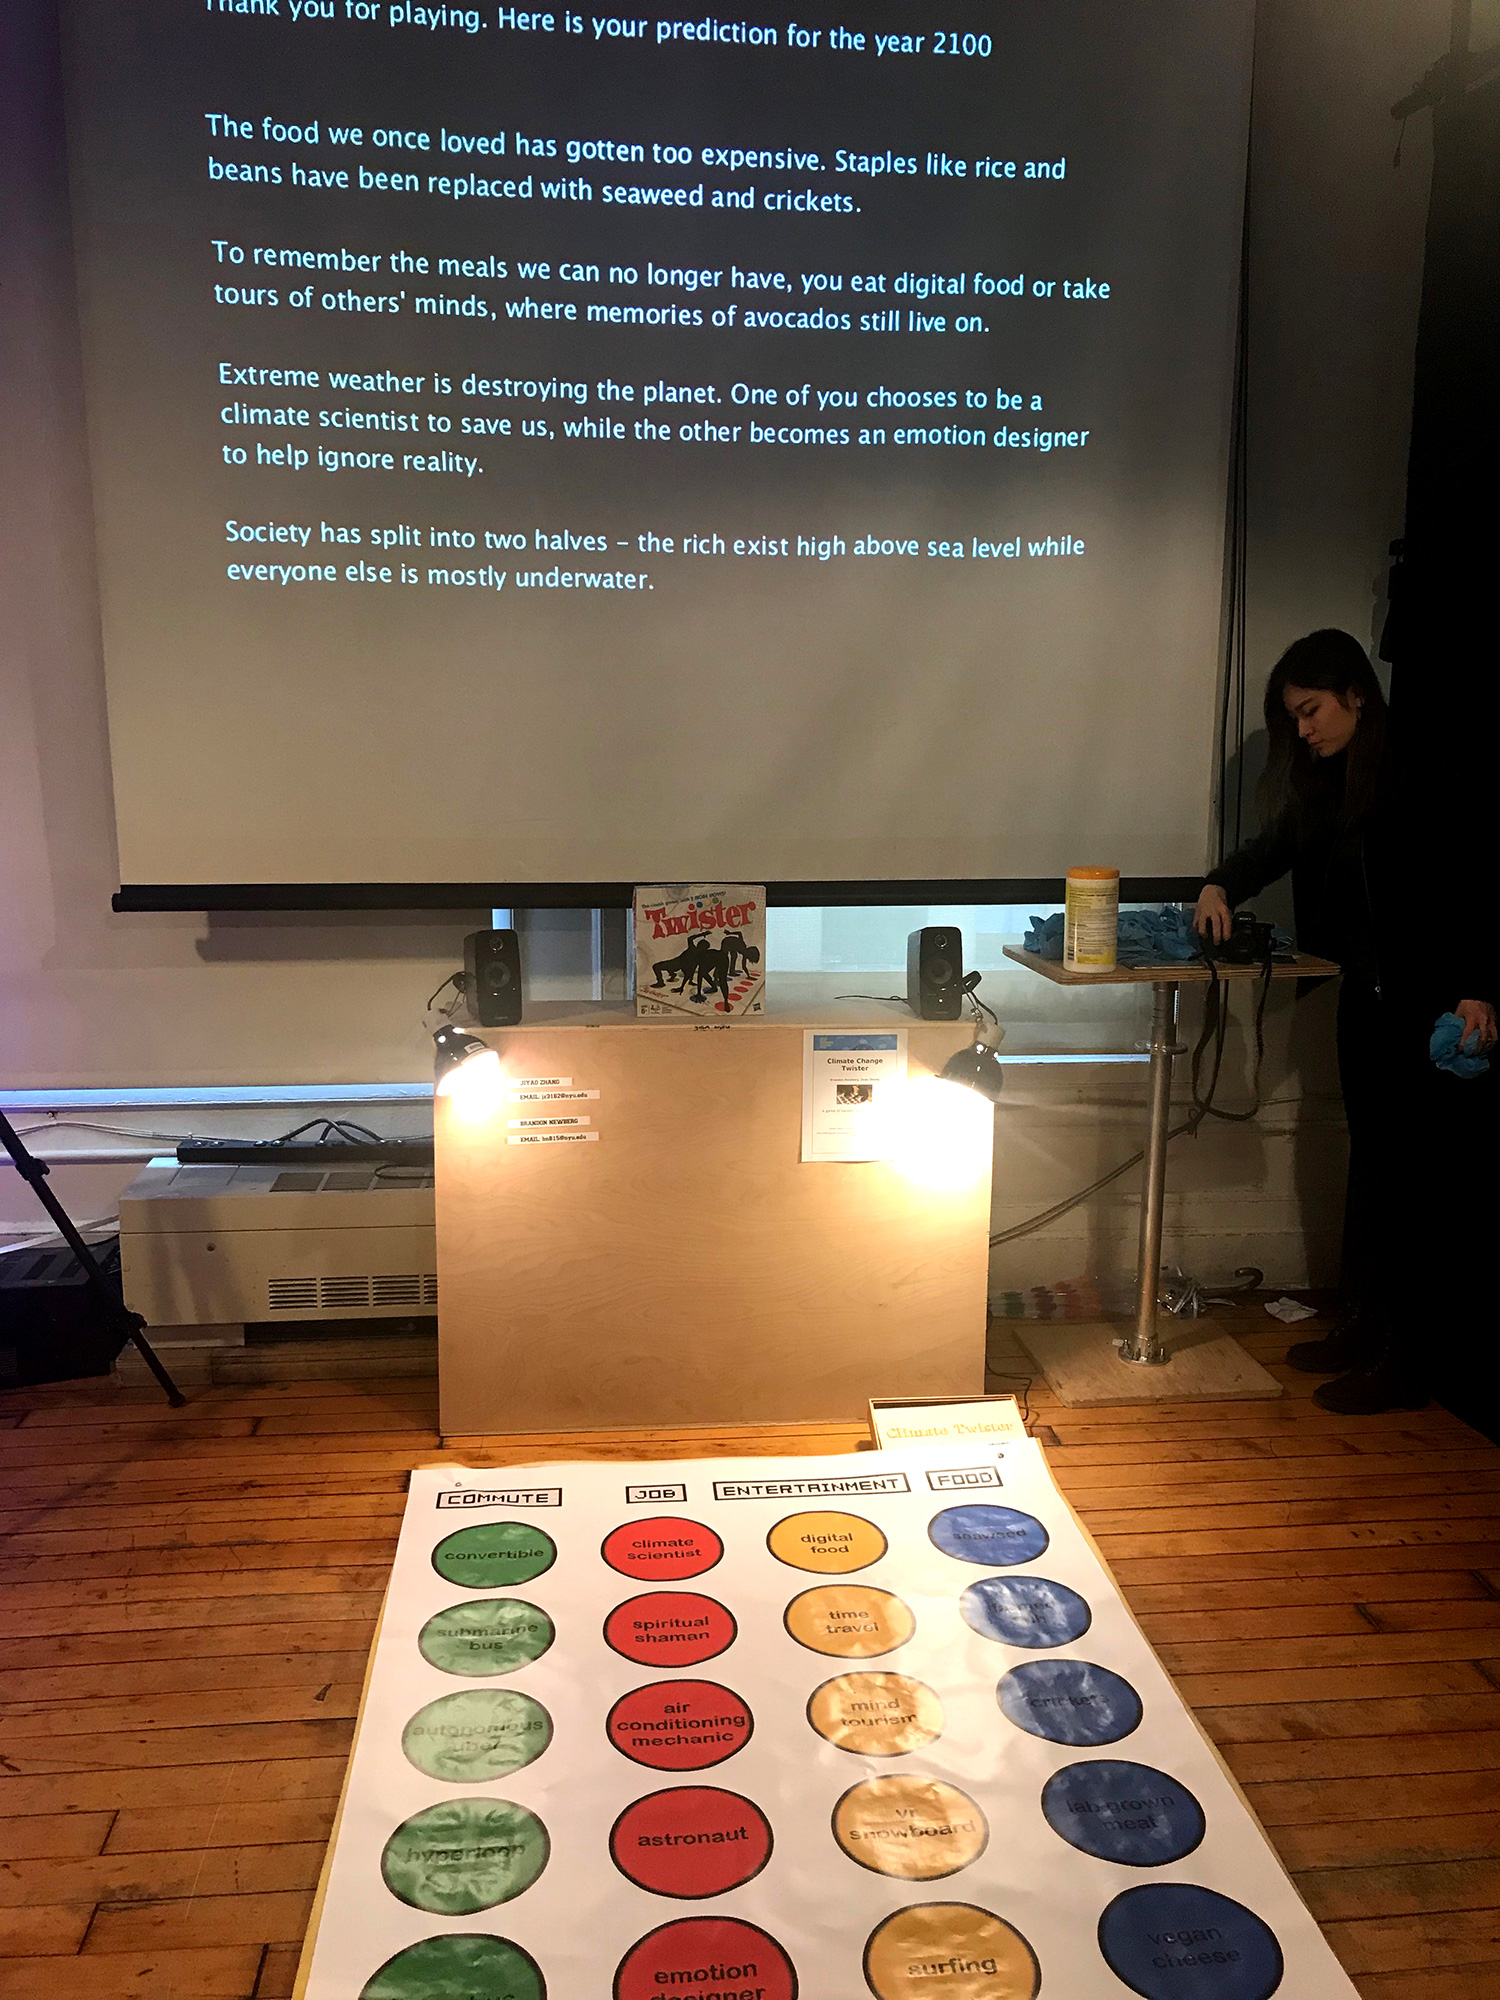 Twister board generating climate change related text on a screen